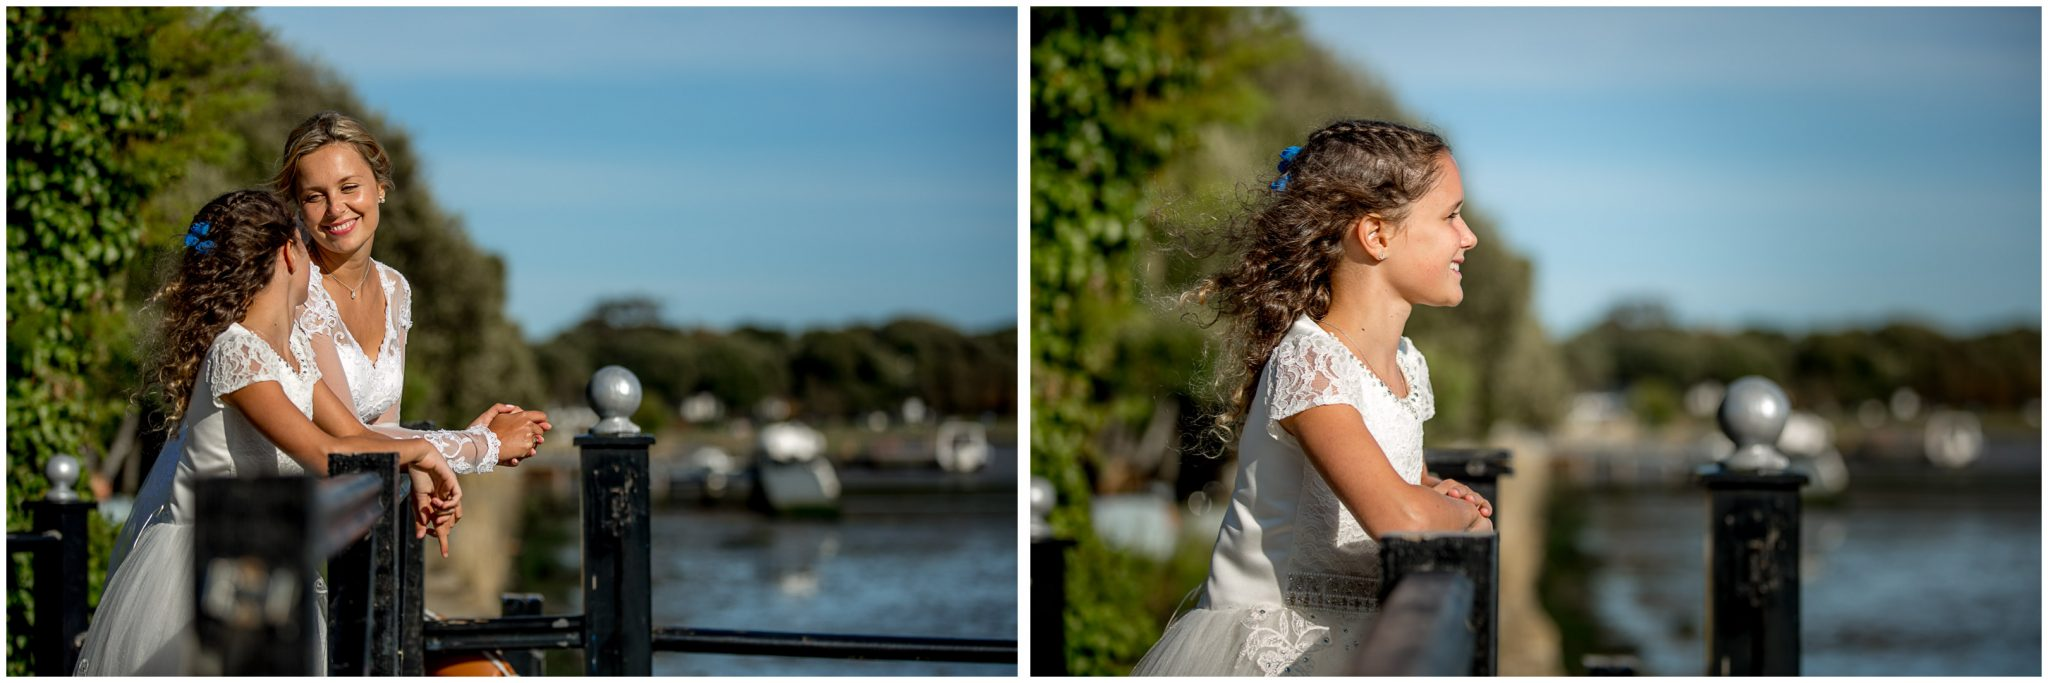 The bride and her daughter look out across the water